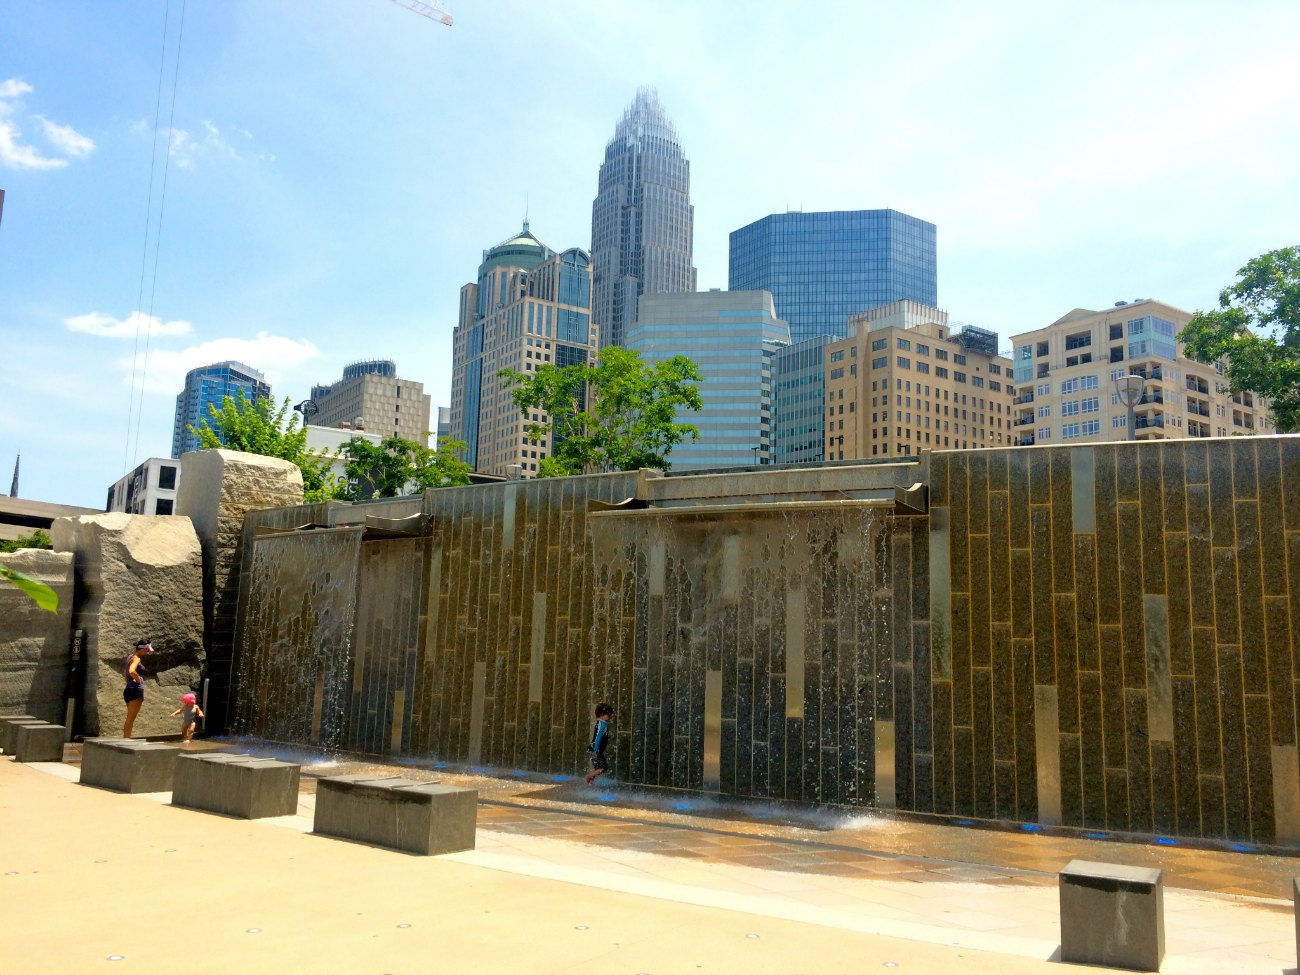 A Guide To Free Public Spraygrounds In Charlotte Charlotte Agenda